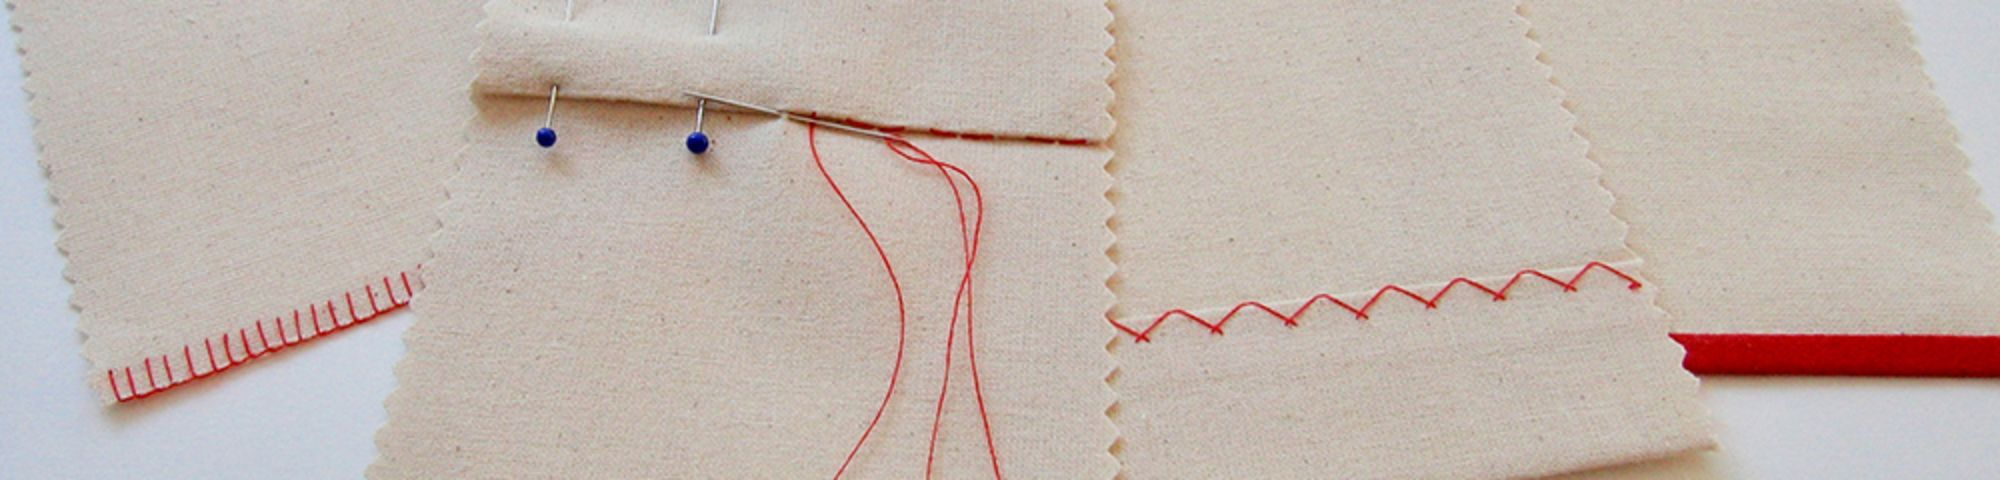 Hand-Sewing for Couture and Bespoke Fashion